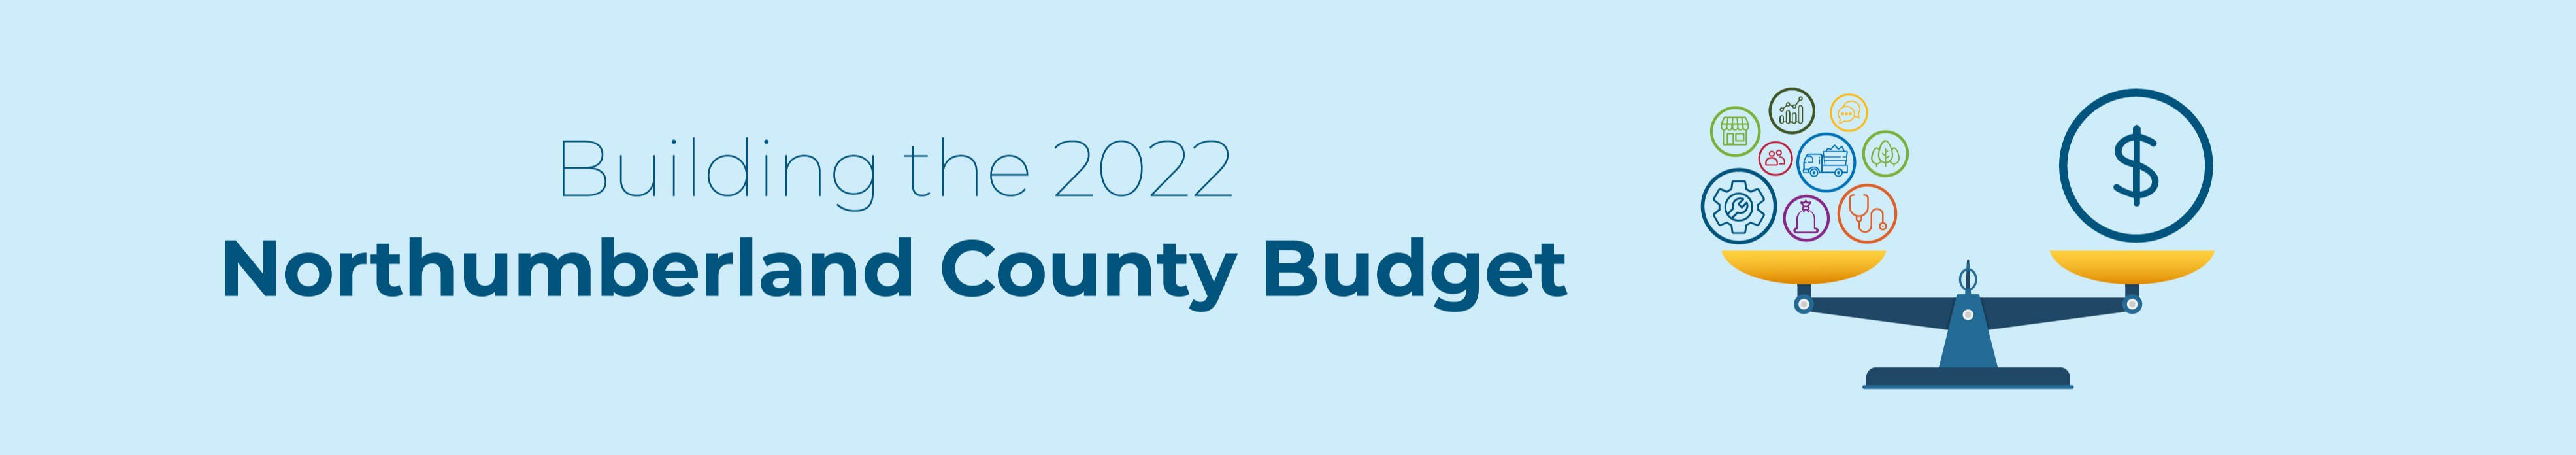 Banner image that says, 'Building the 2022 Northumberland County Budget' with image of scale balancing dollar sign and various icons representing County services